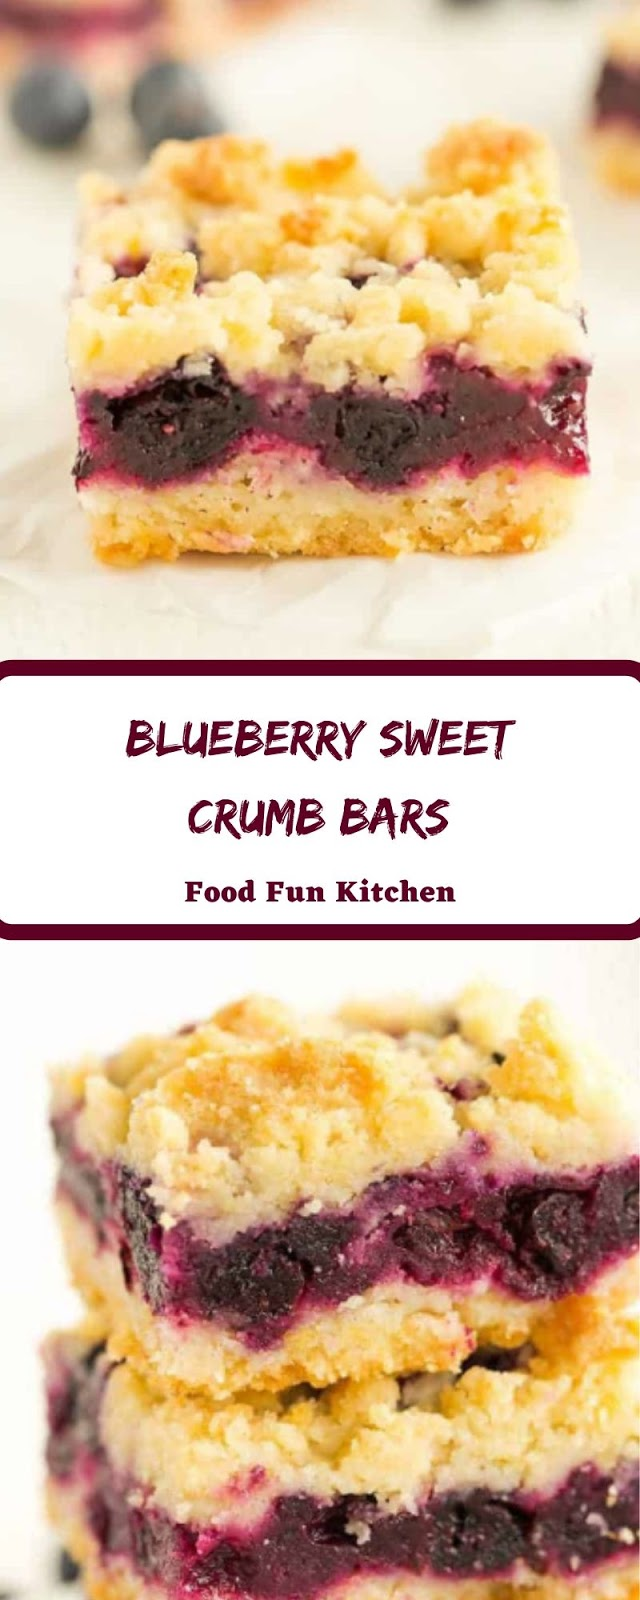 BLUEBERRY SWEET CRUMB BARS